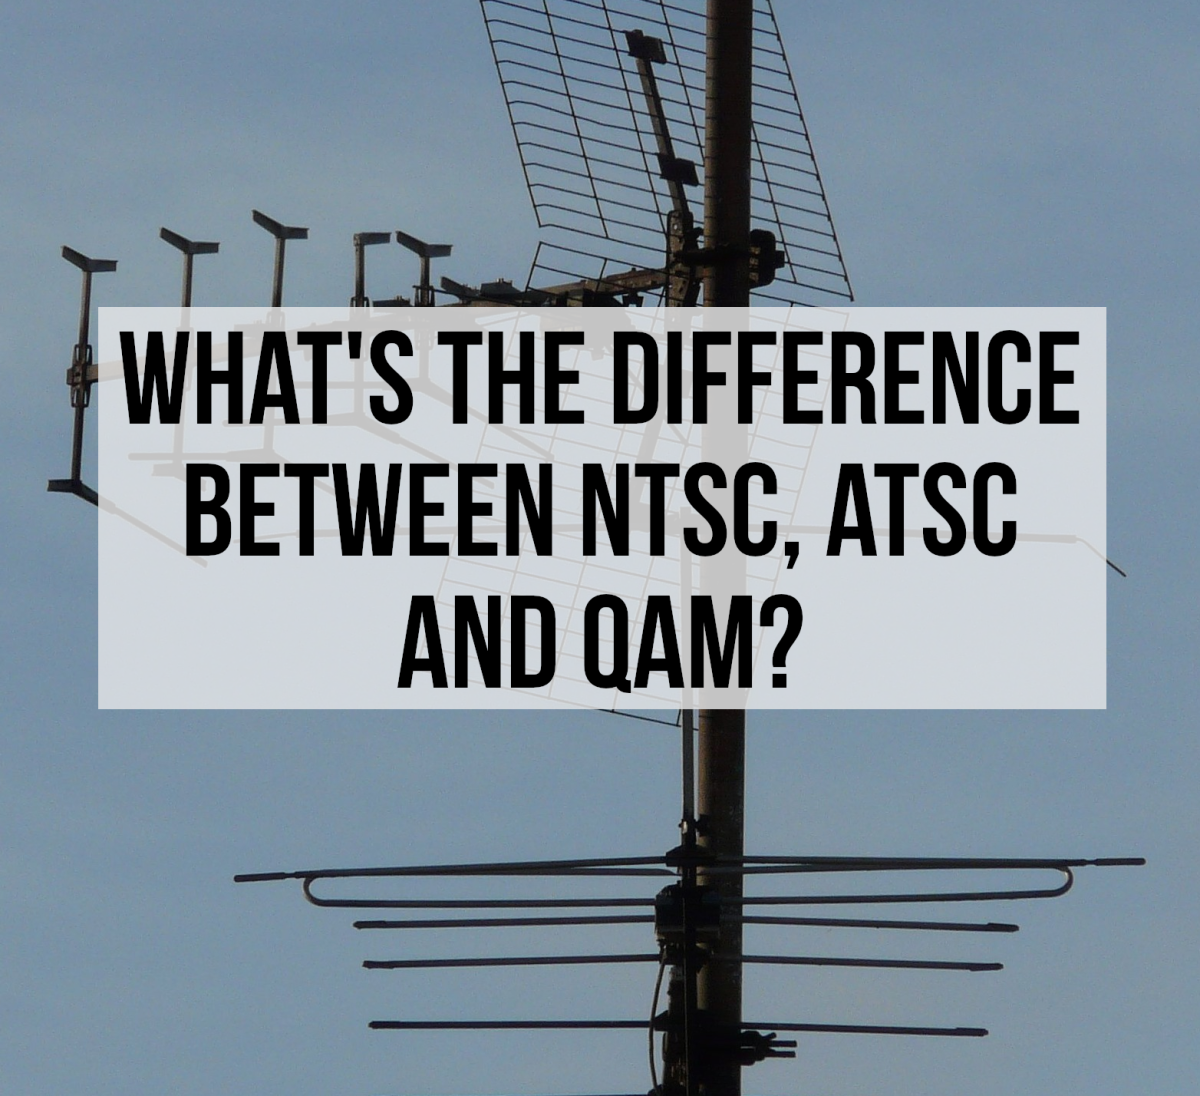 Understanding the Difference Between NTSC, ATSC, and QAM